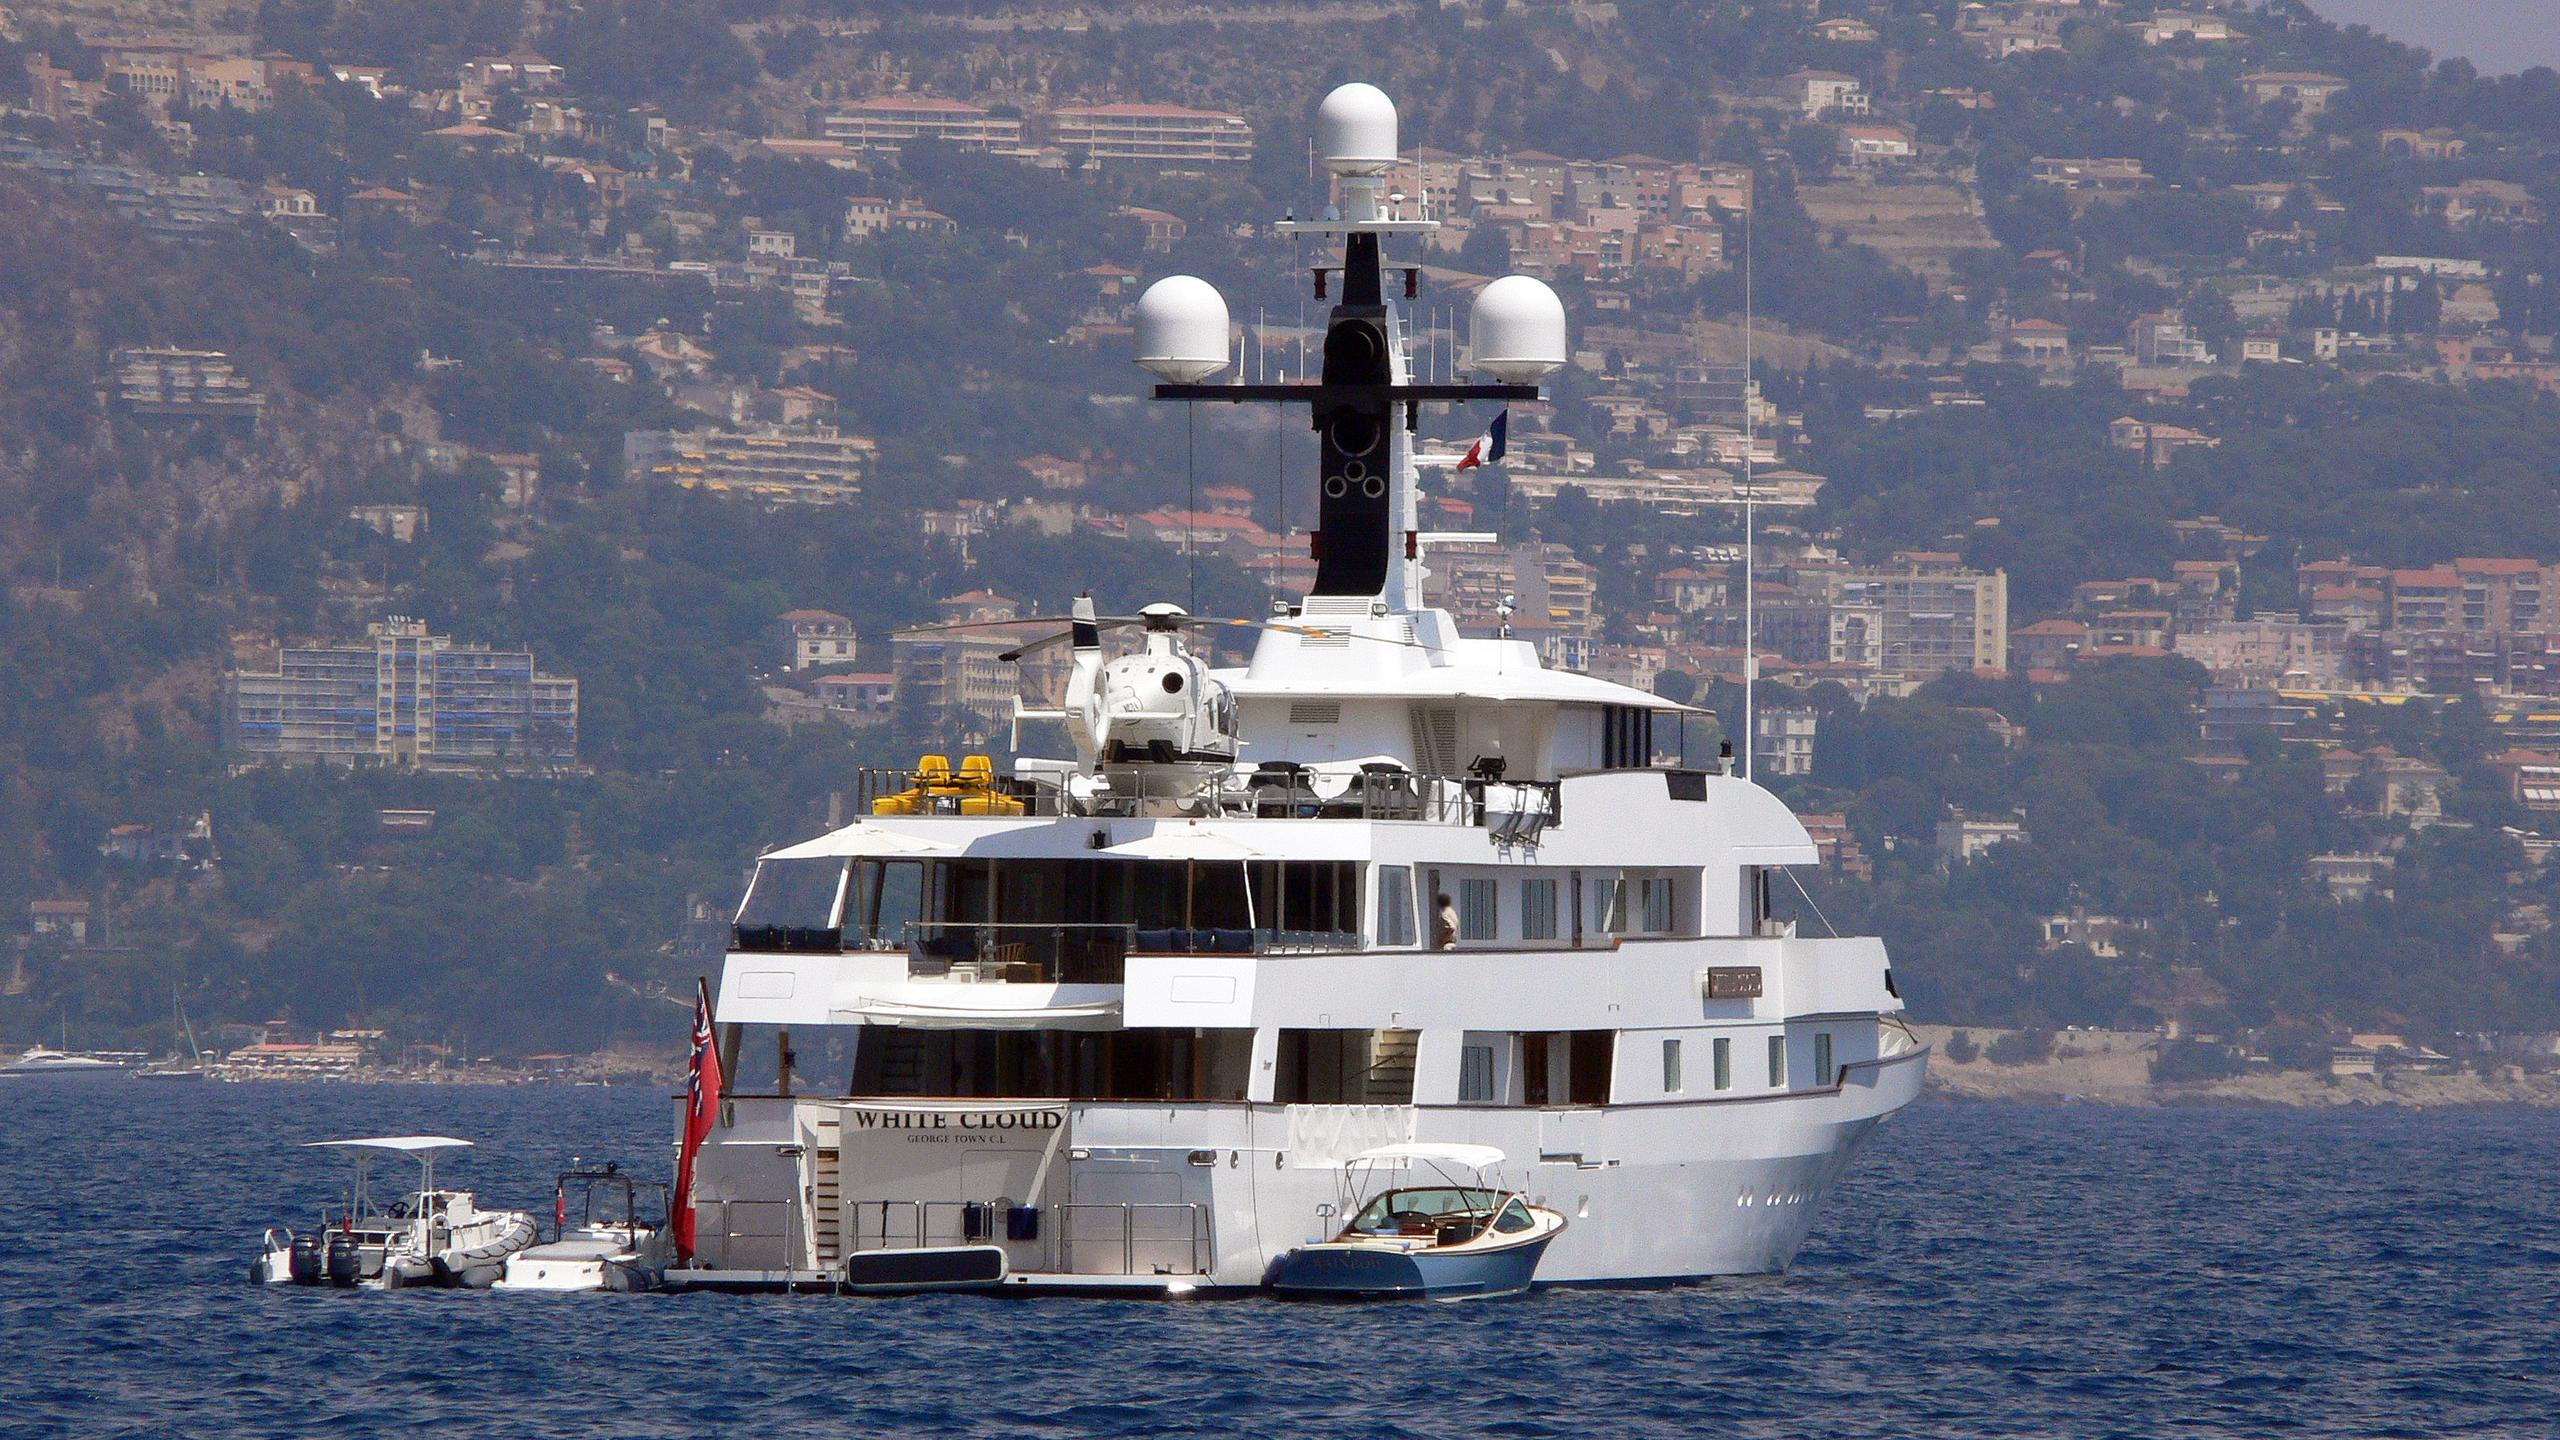 falcon-lair-motor-yacht-feadship-1983-67m-stern-before-refit